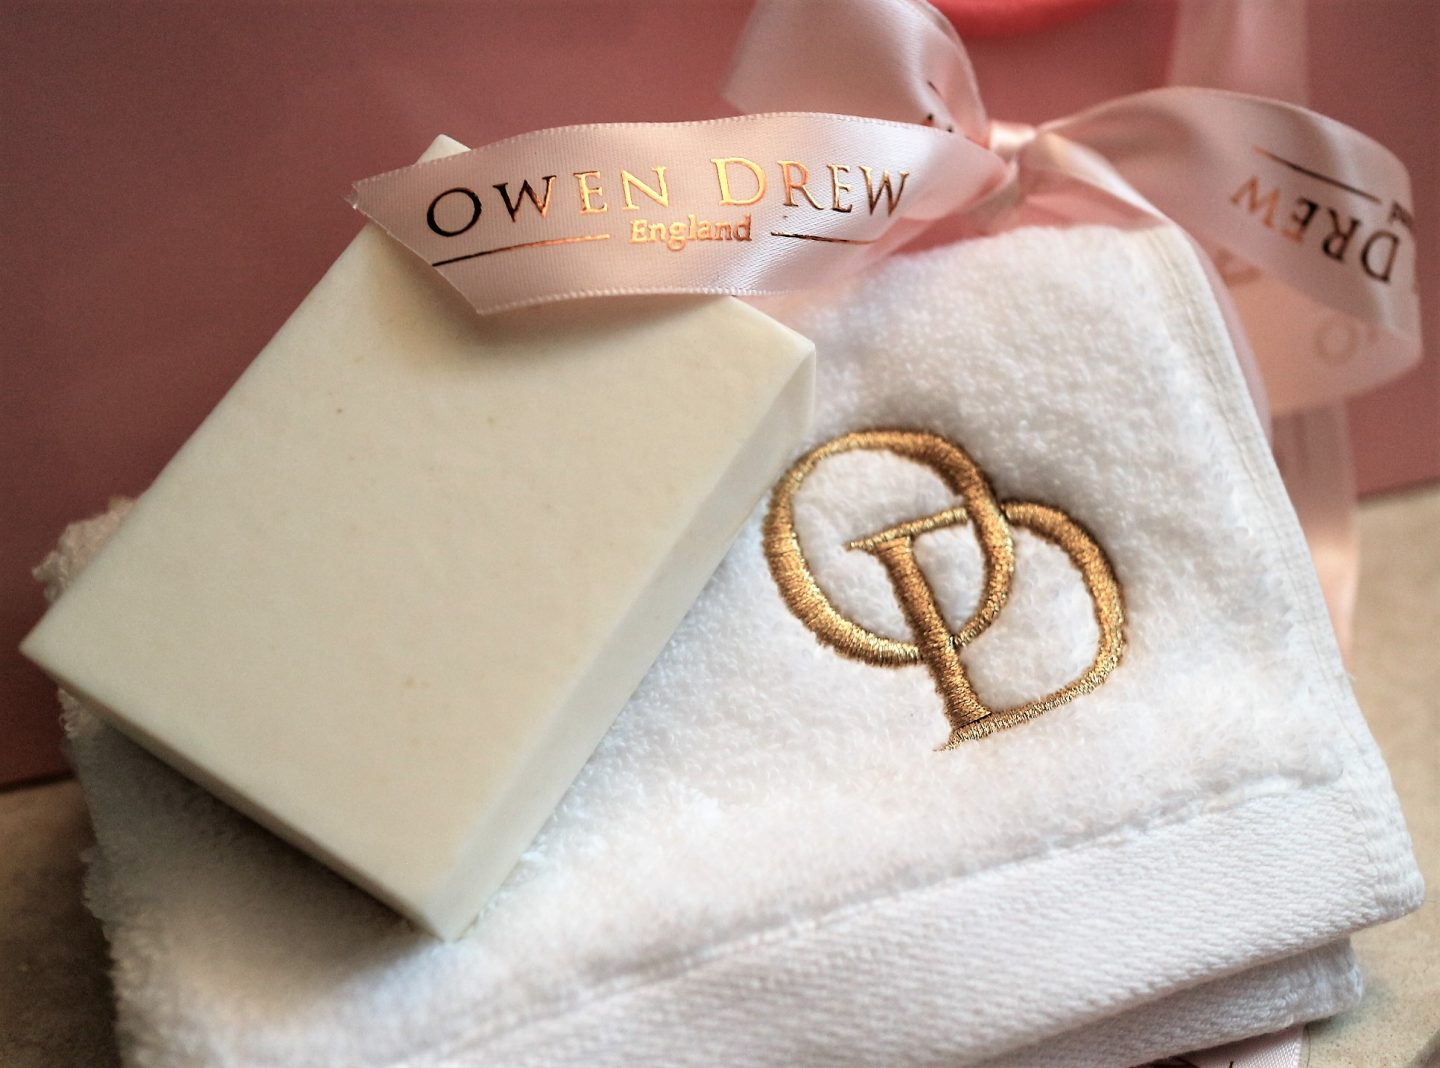 Owen Drew. Owen Drew Soap. Luxury Candles. Luxury Bath and Body. Beauty Blog. UK Blogger.